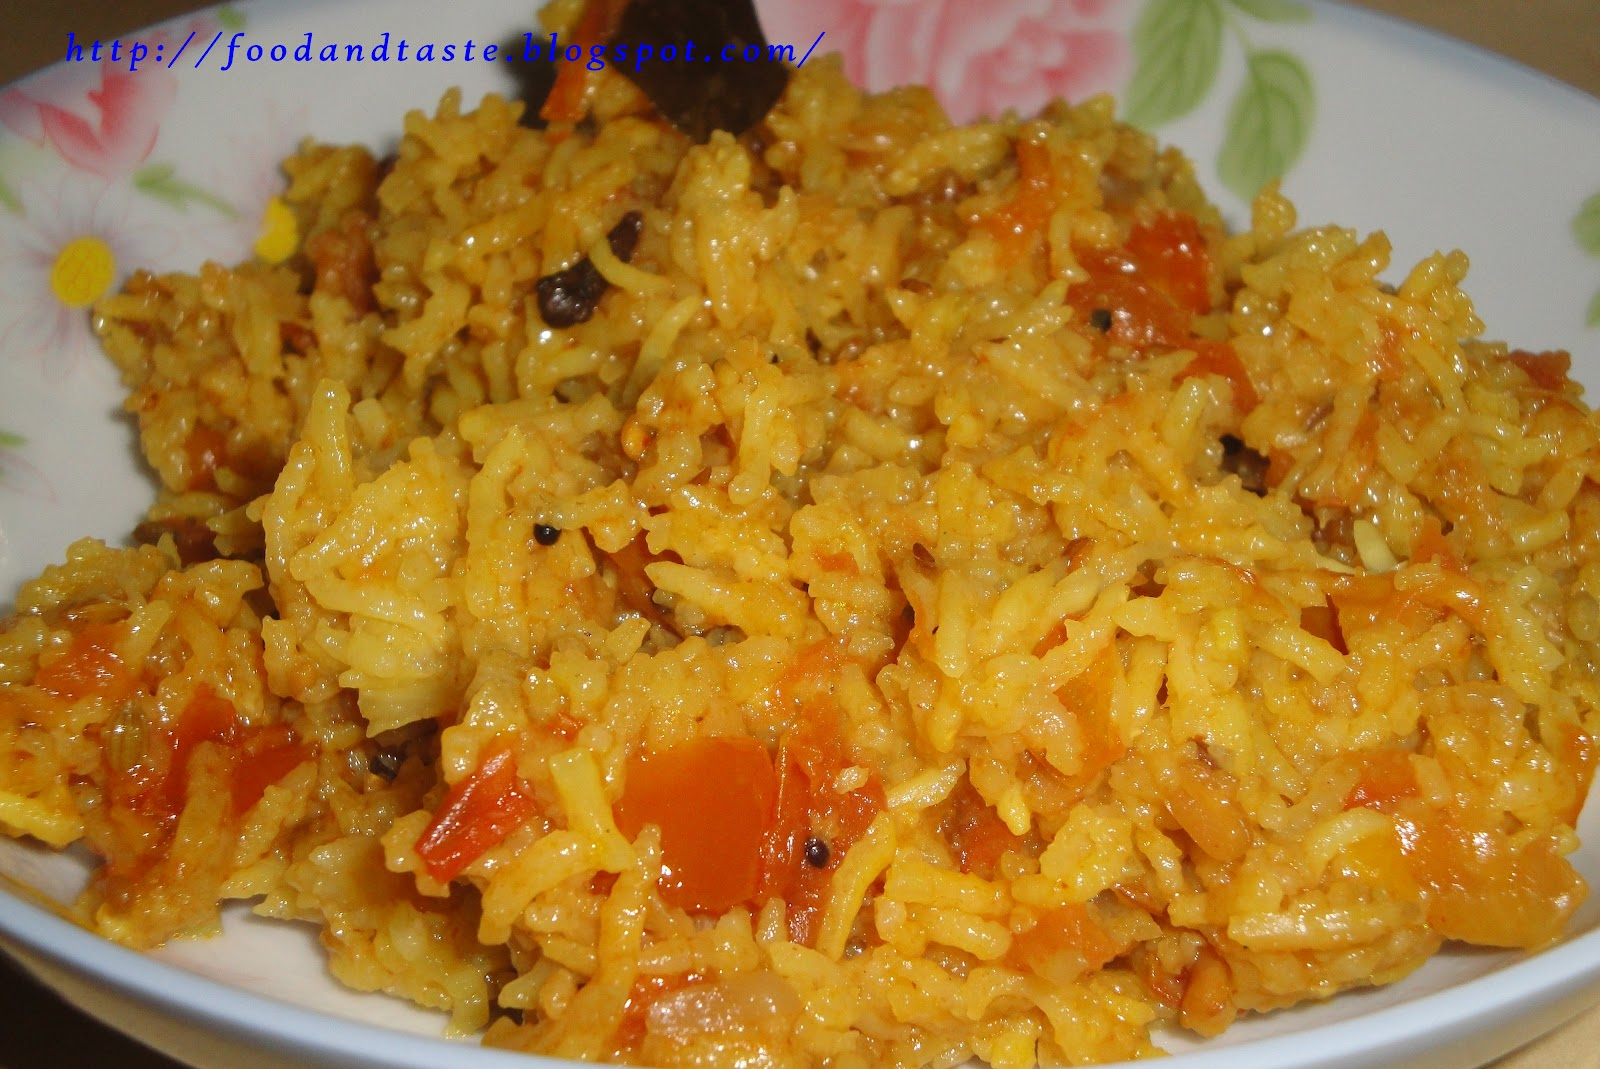 Food and taste thakkali sadam tomato rice south indian recipe thakkali sadam tomato rice south indian recipe forumfinder Image collections